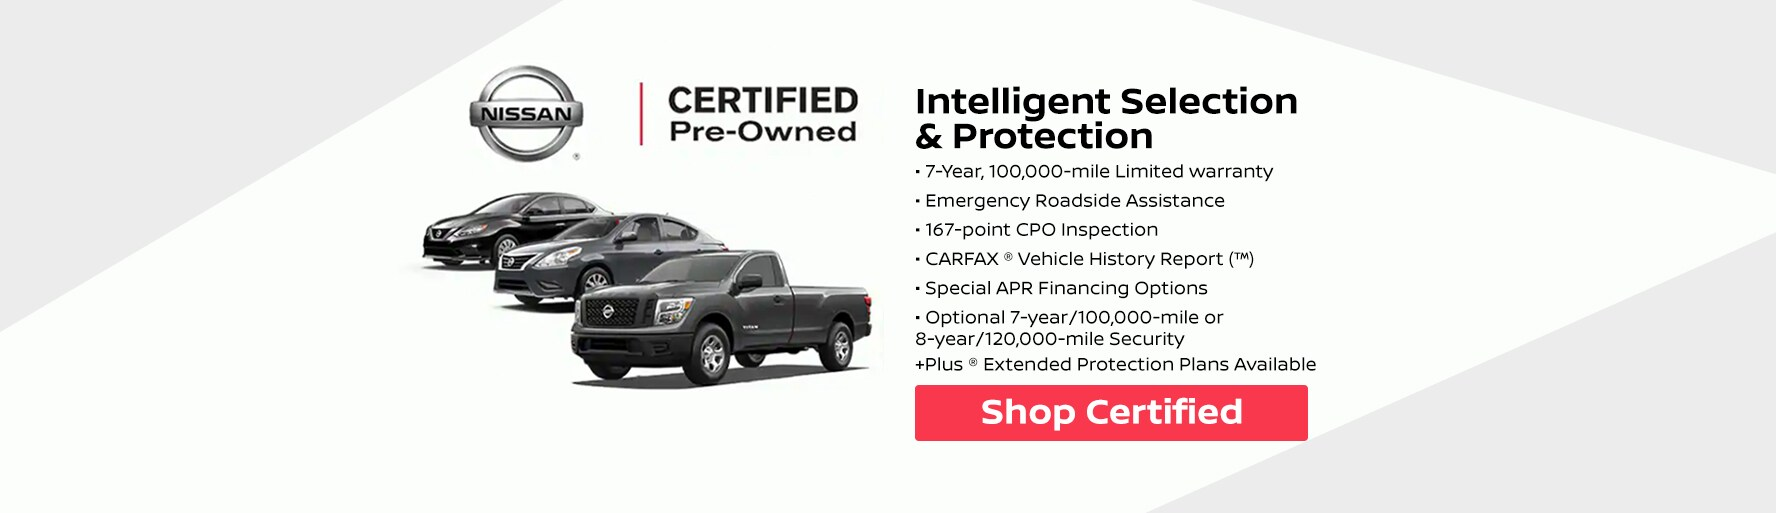 New 2019 & 2020 Nissan & Used Car Dealer | Hendersonville | Serving